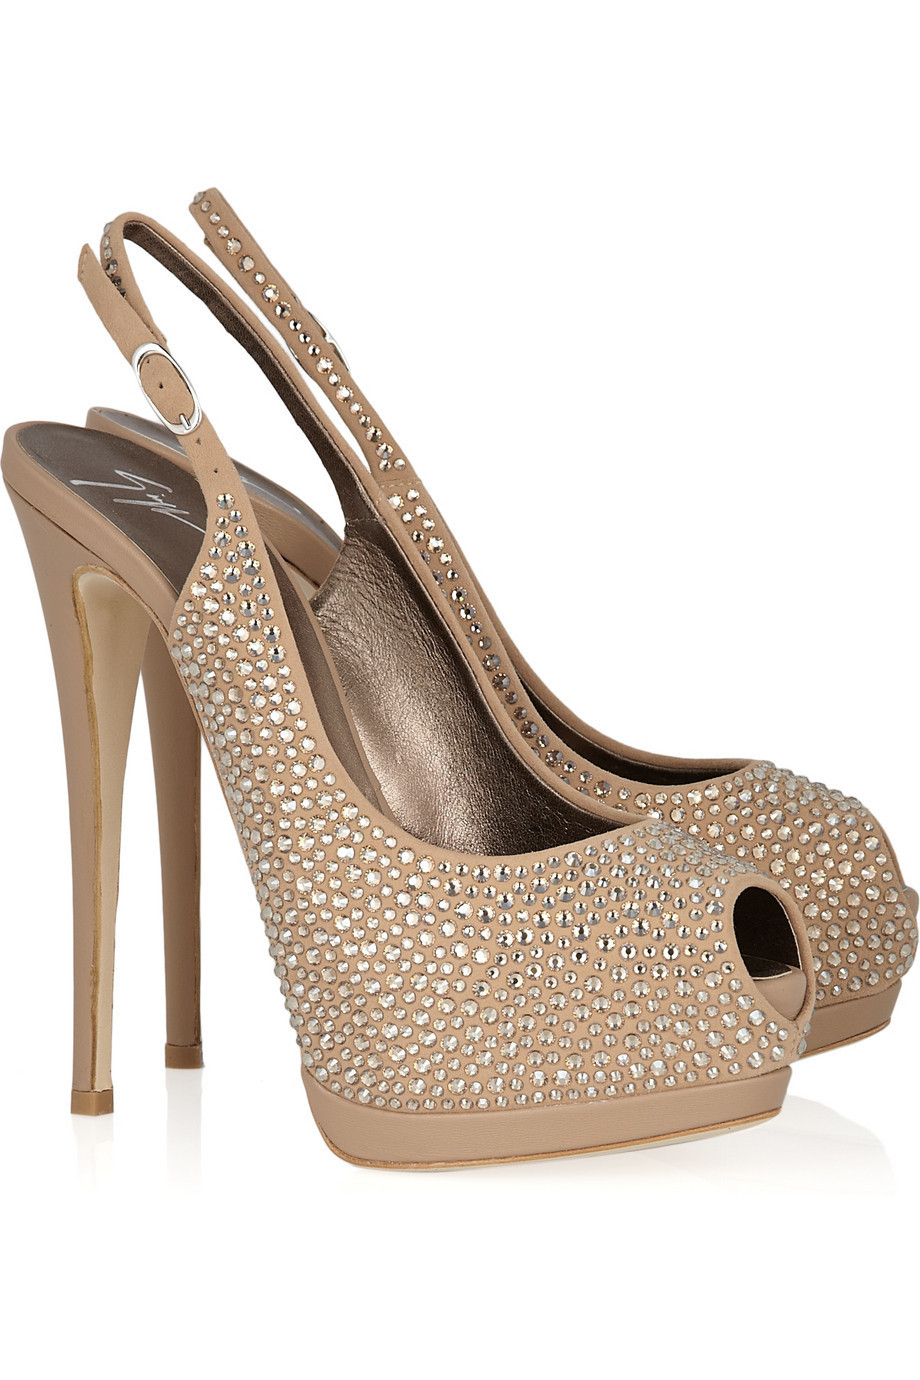 Where Can I Buy Giuseppe Zanotti Slingbacks - Product 178610